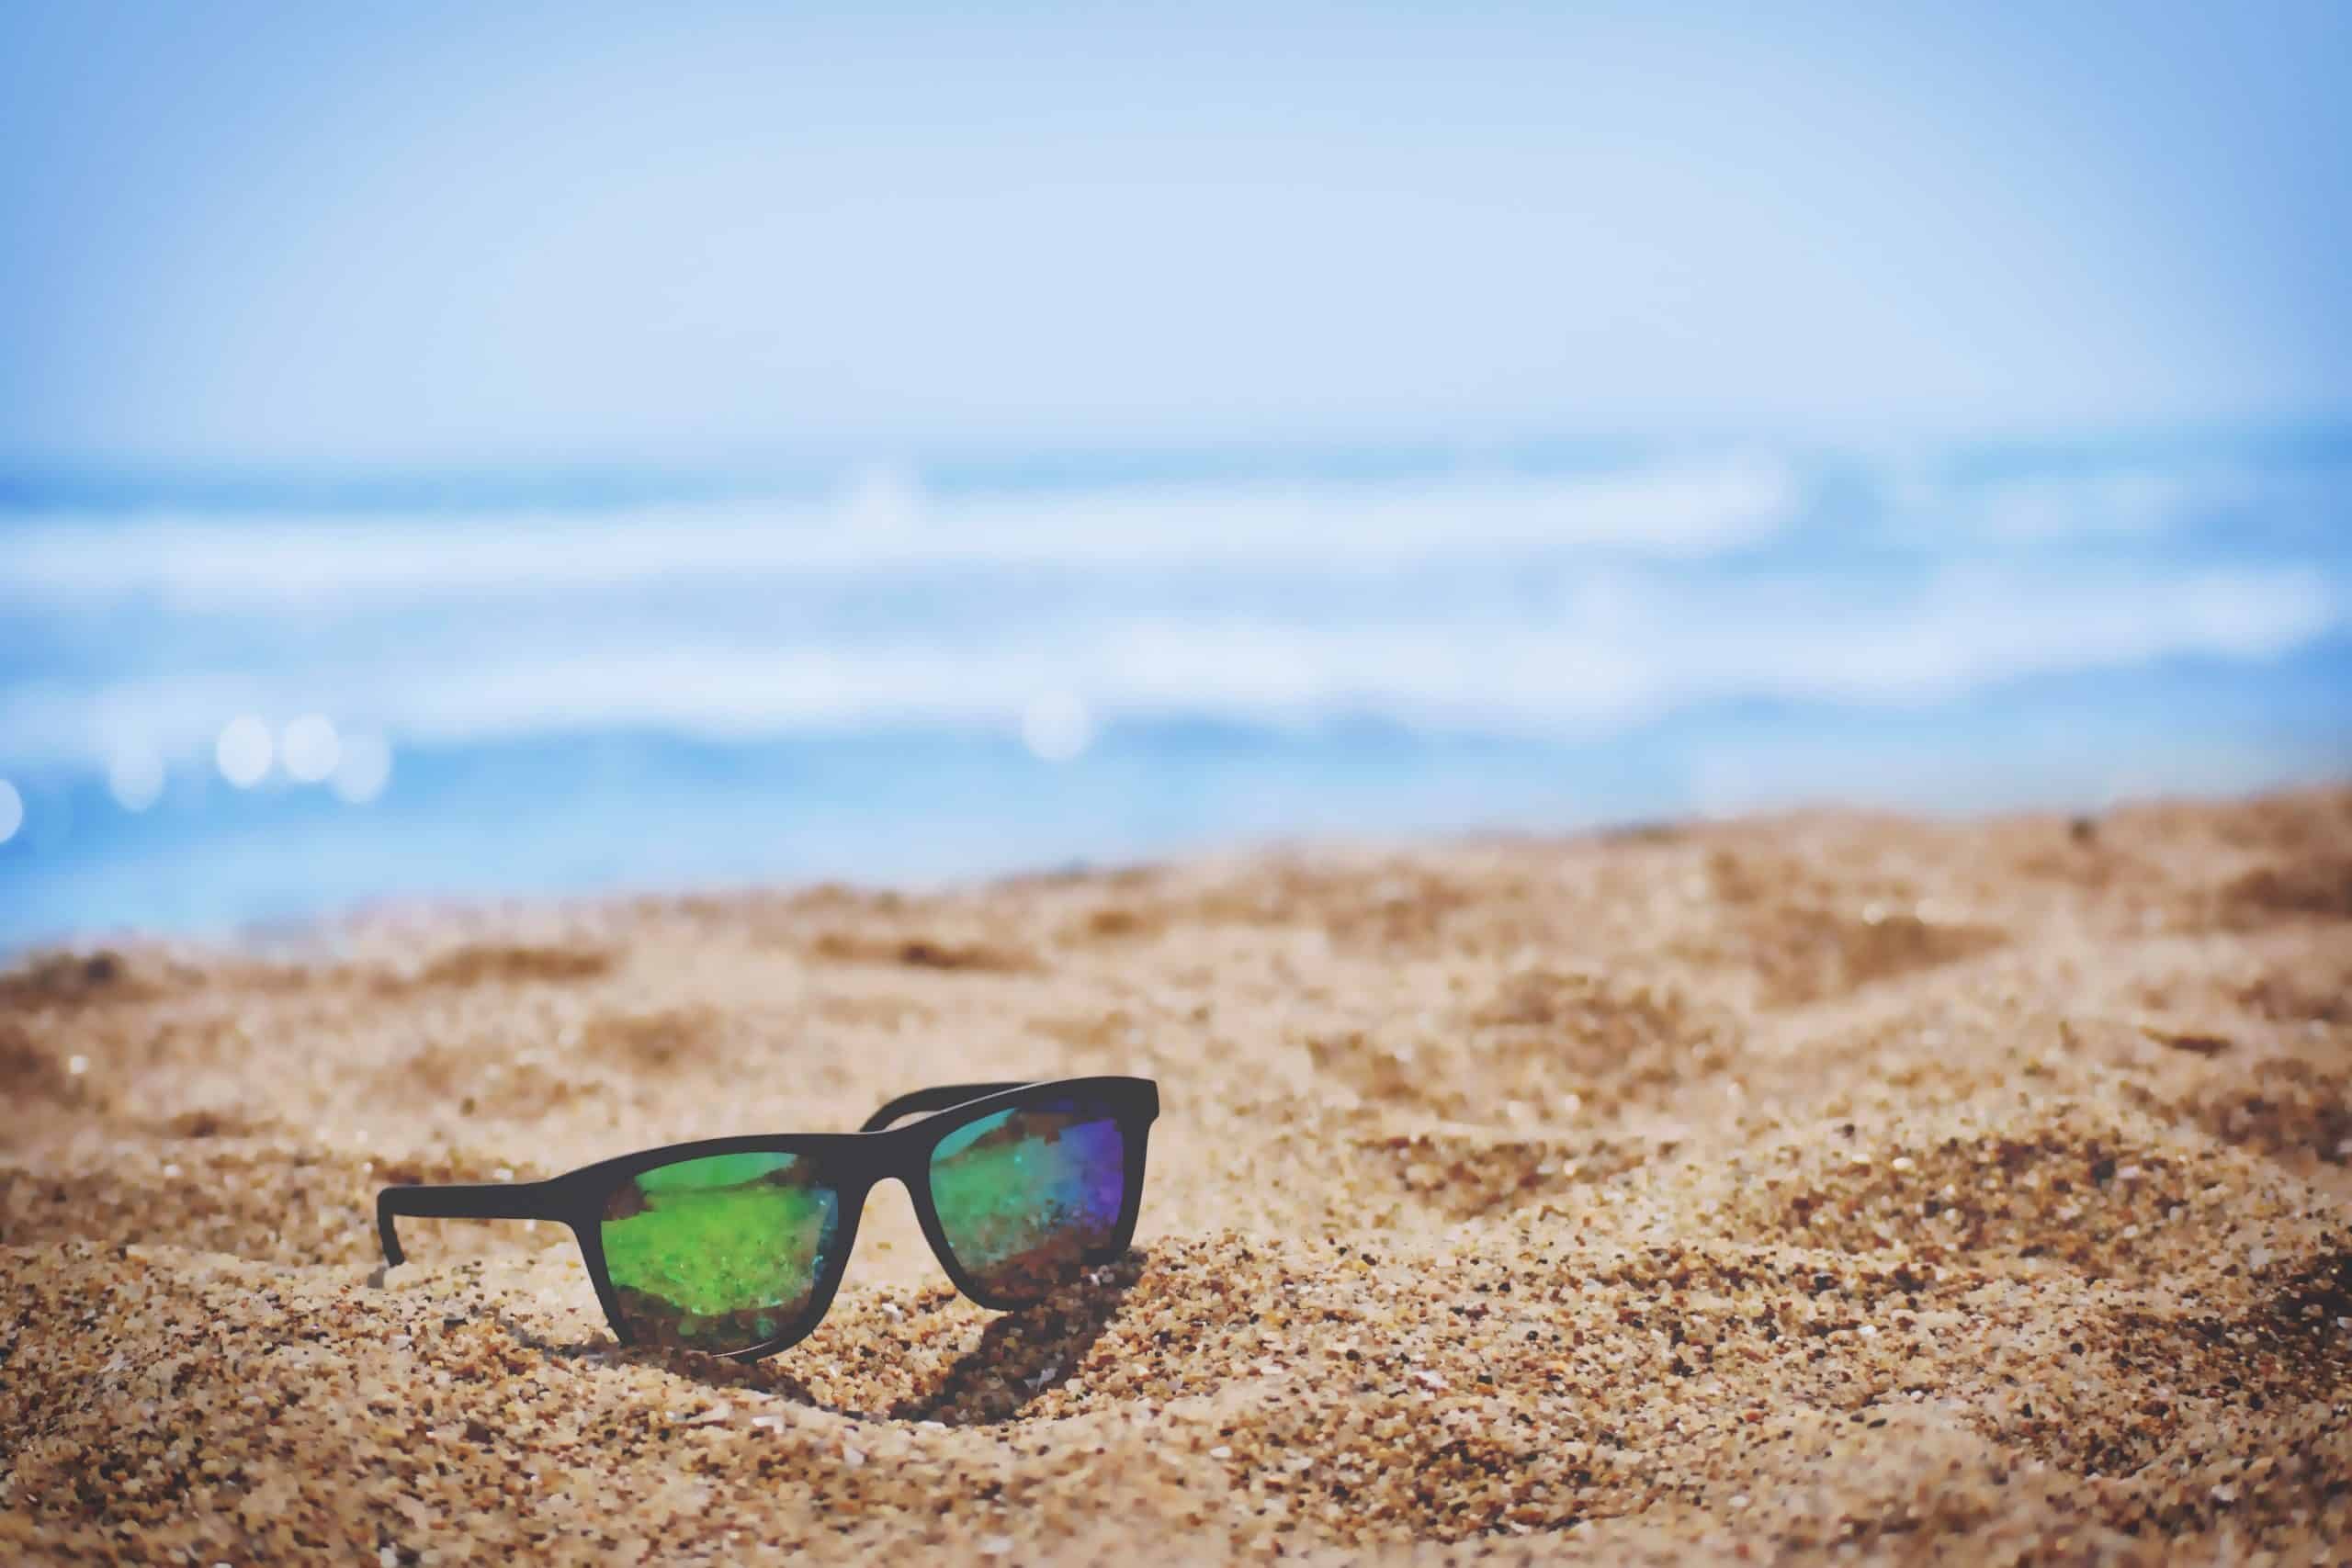 Best sunglasses for the beach